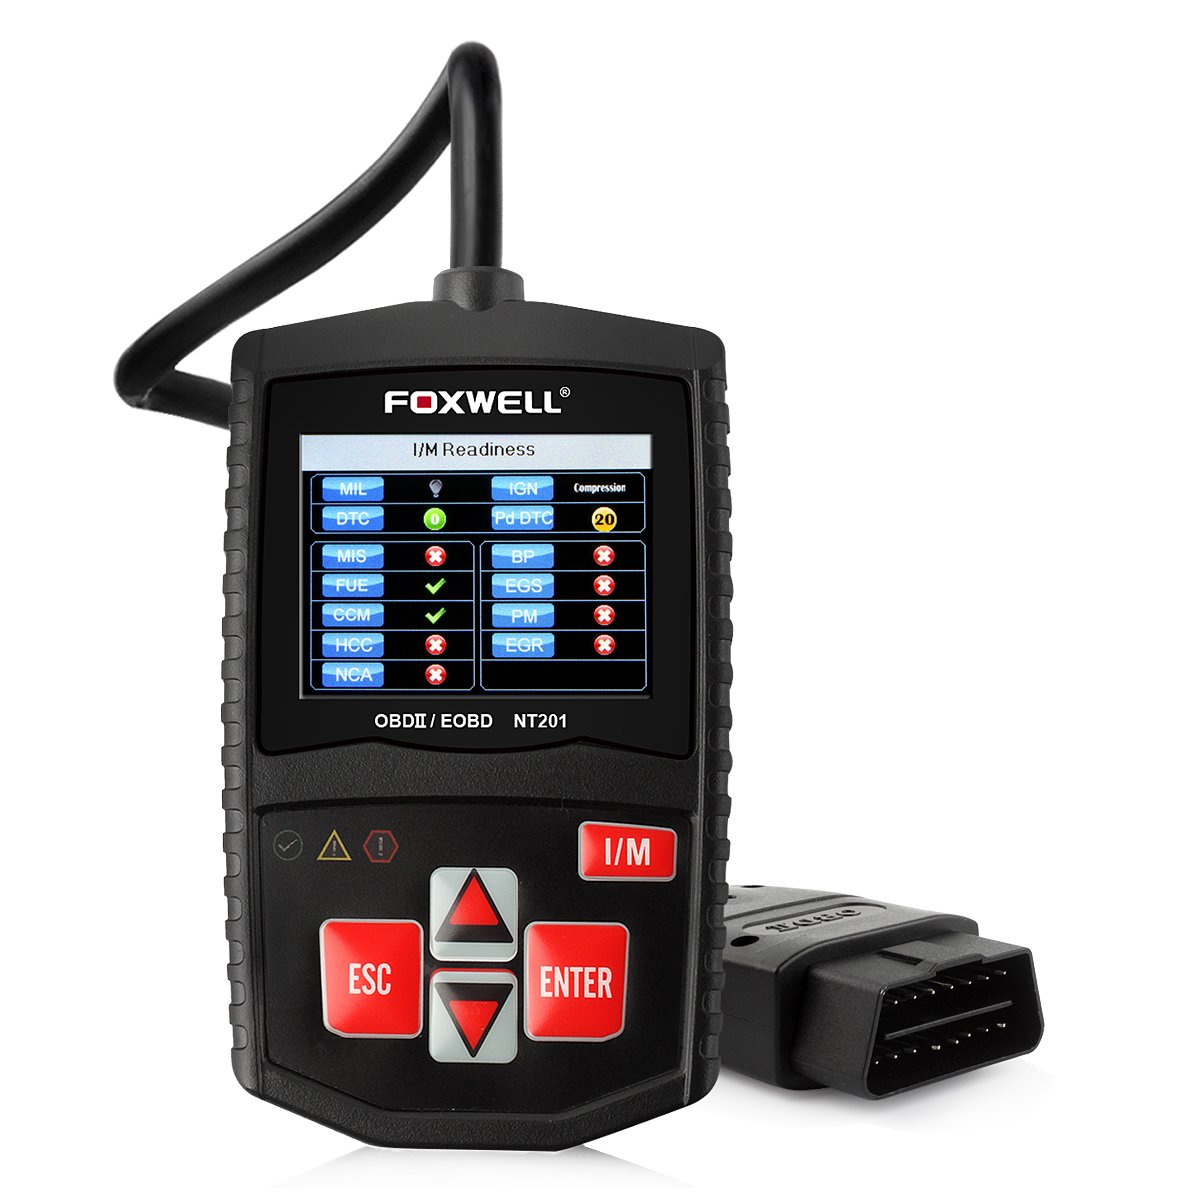 FOXWELL DIY OBD2 OBD II Scanner Automotive Diagnostics Codes Scan Tools Check Car Engine Light Fault Code Readers Auto Diagnostic Tester for OBDII Vehicles (NT201 Black)